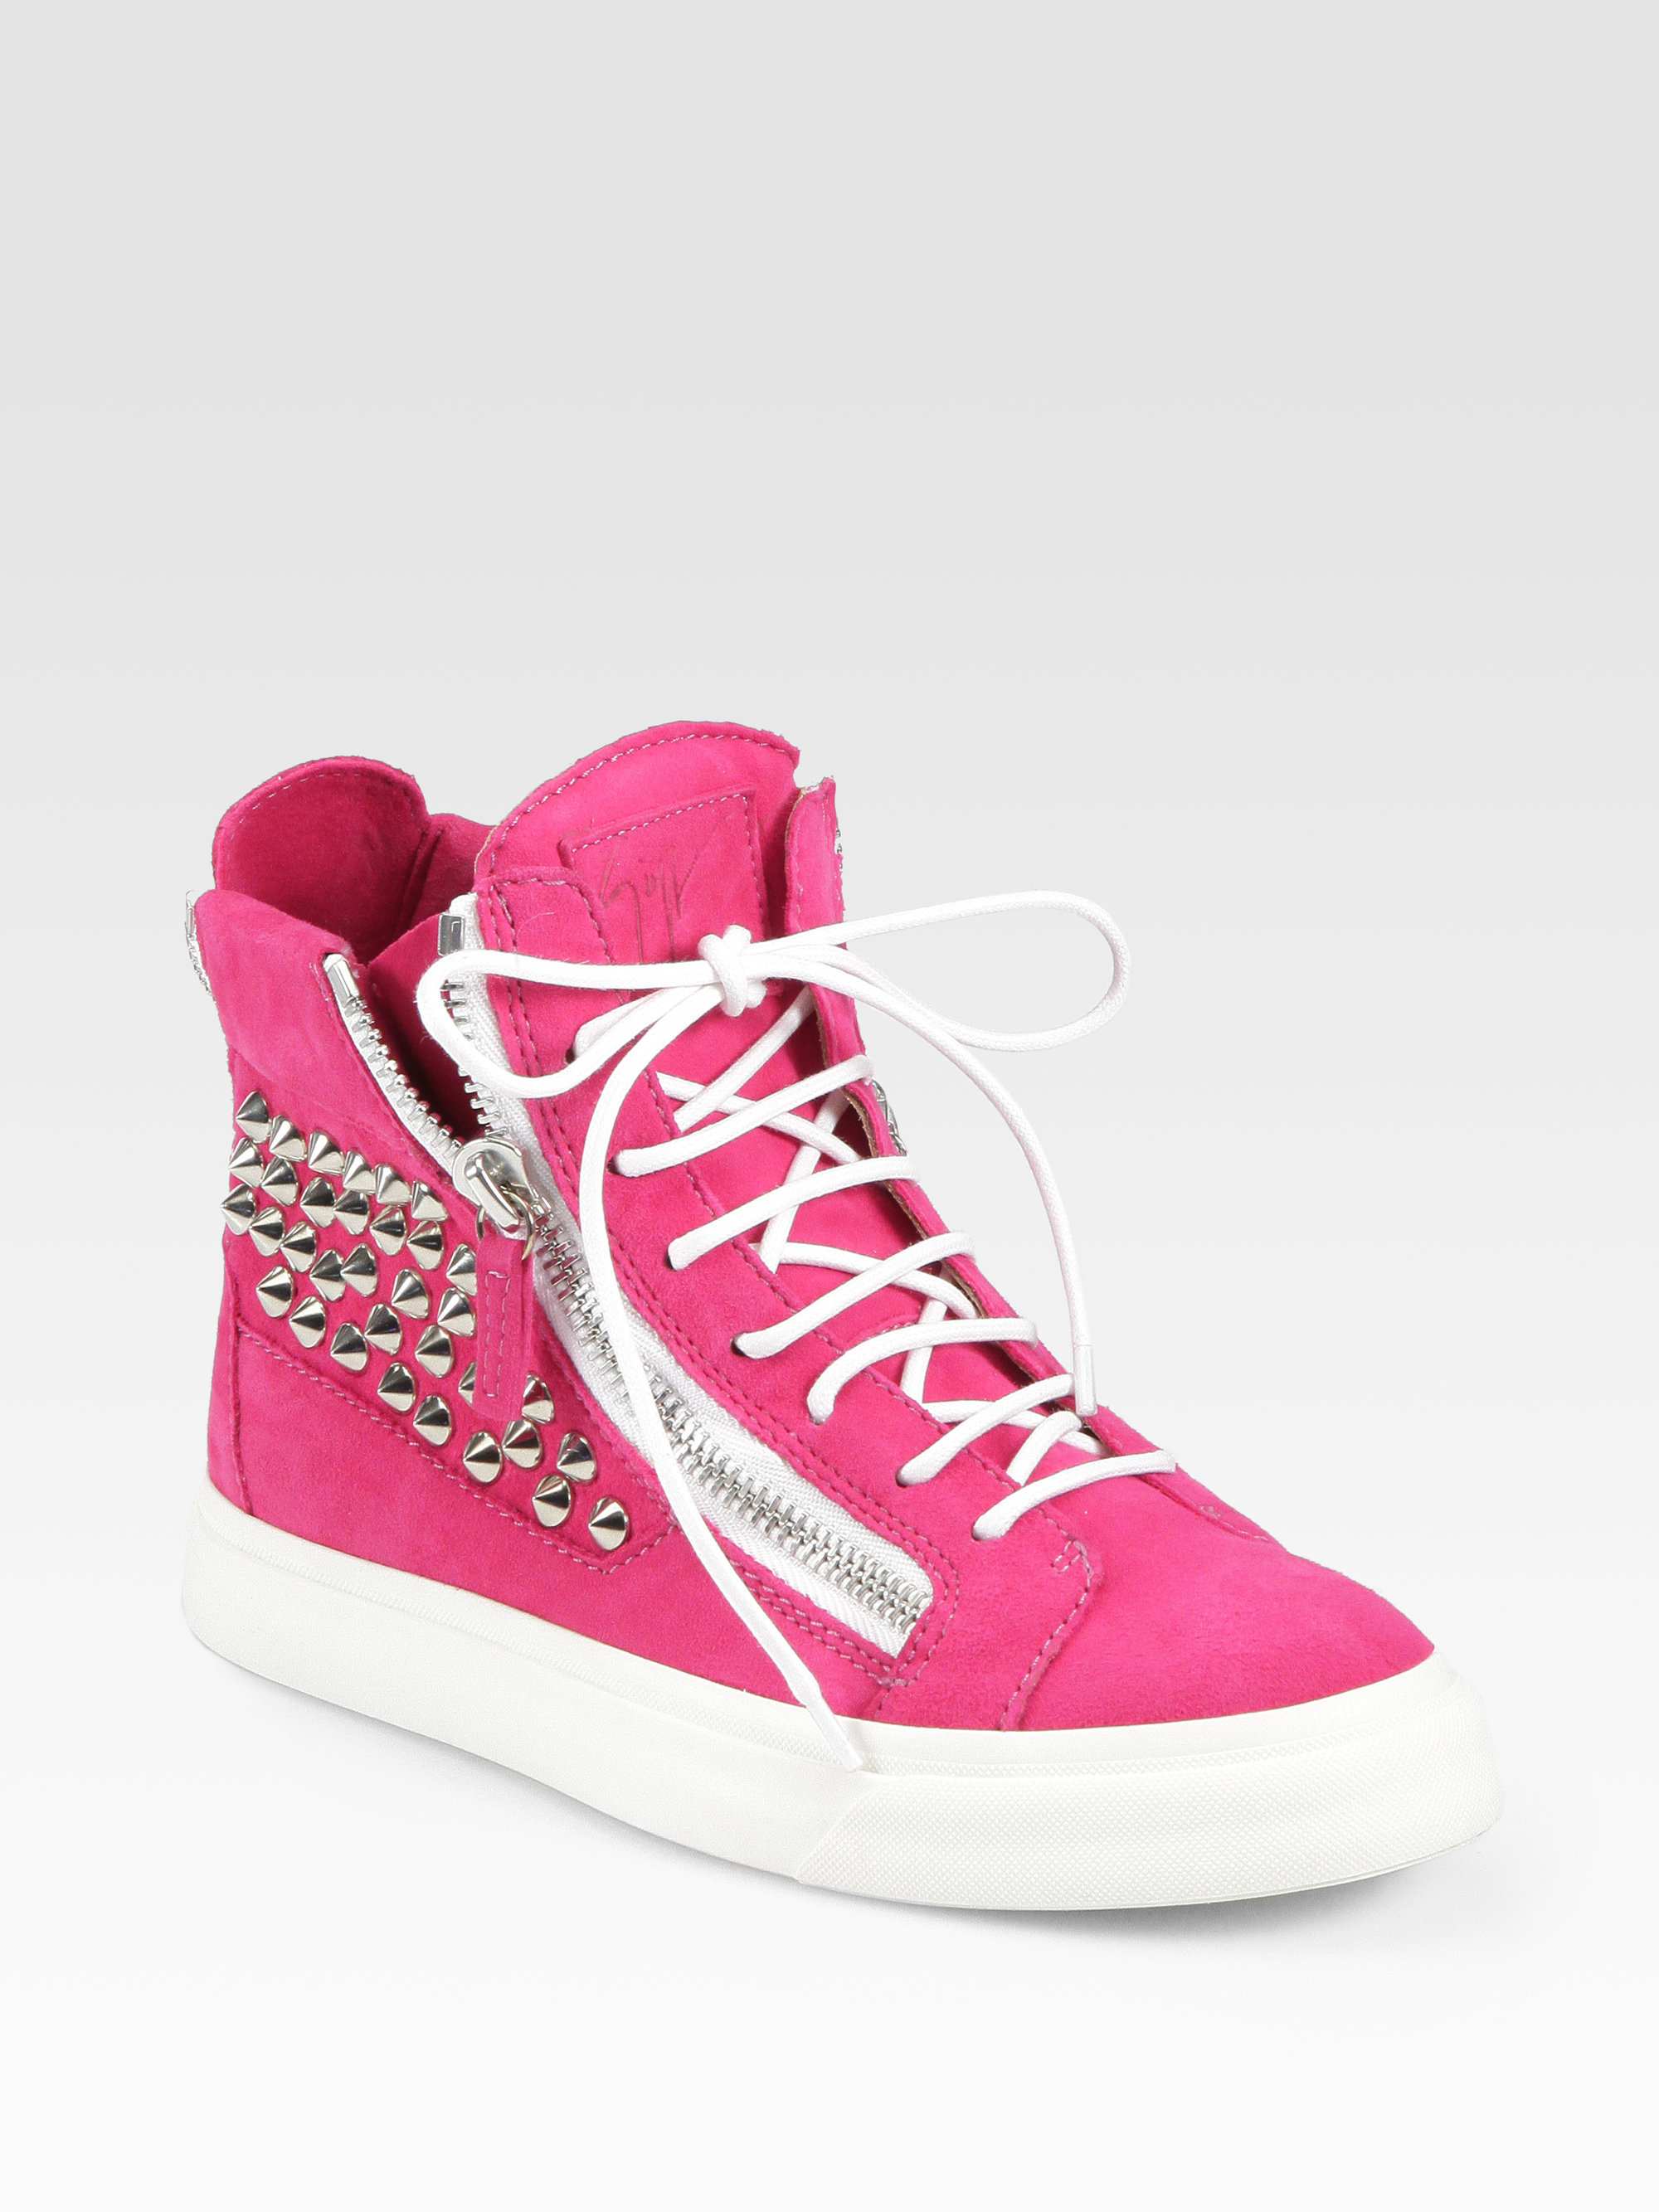 Lyst - Giuseppe Zanotti Studded Suede Wedge Sneakers in Pink